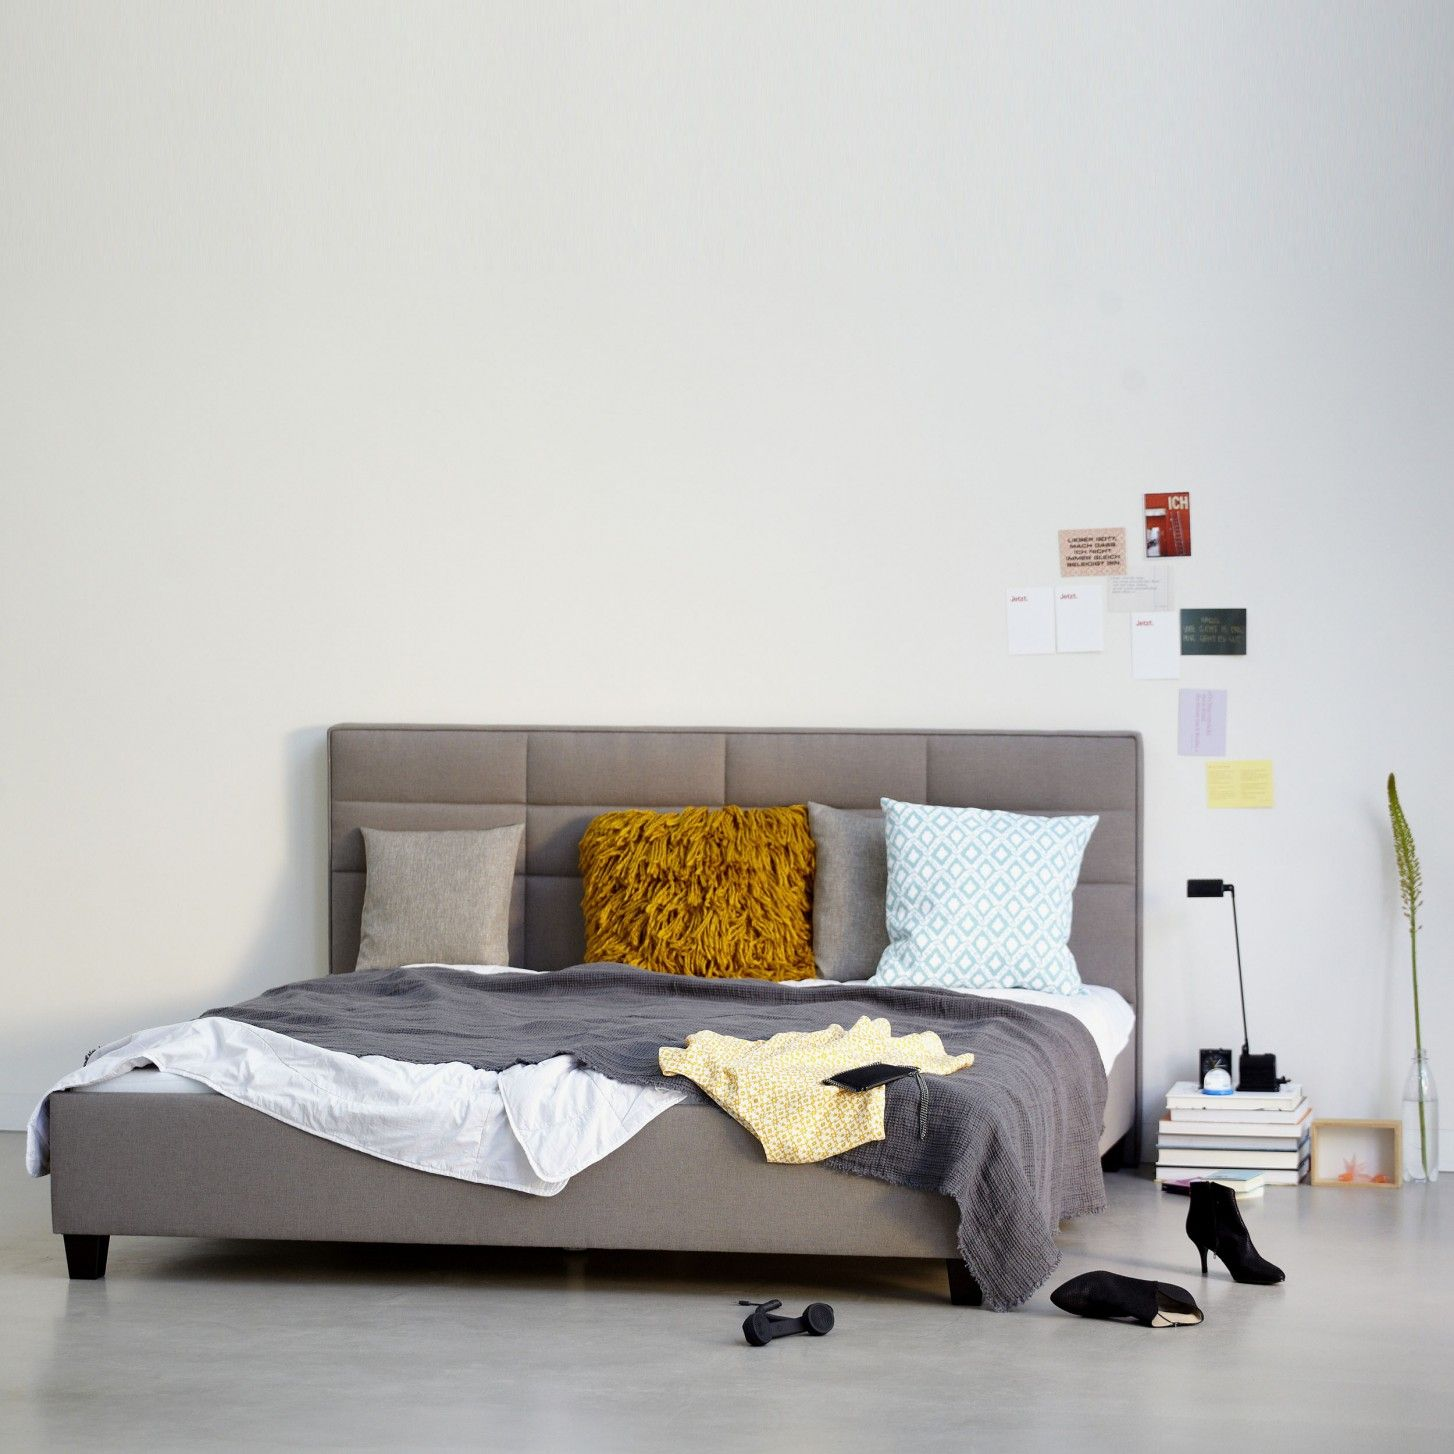 tosno bett im ikarus design shop fondos pinterest. Black Bedroom Furniture Sets. Home Design Ideas